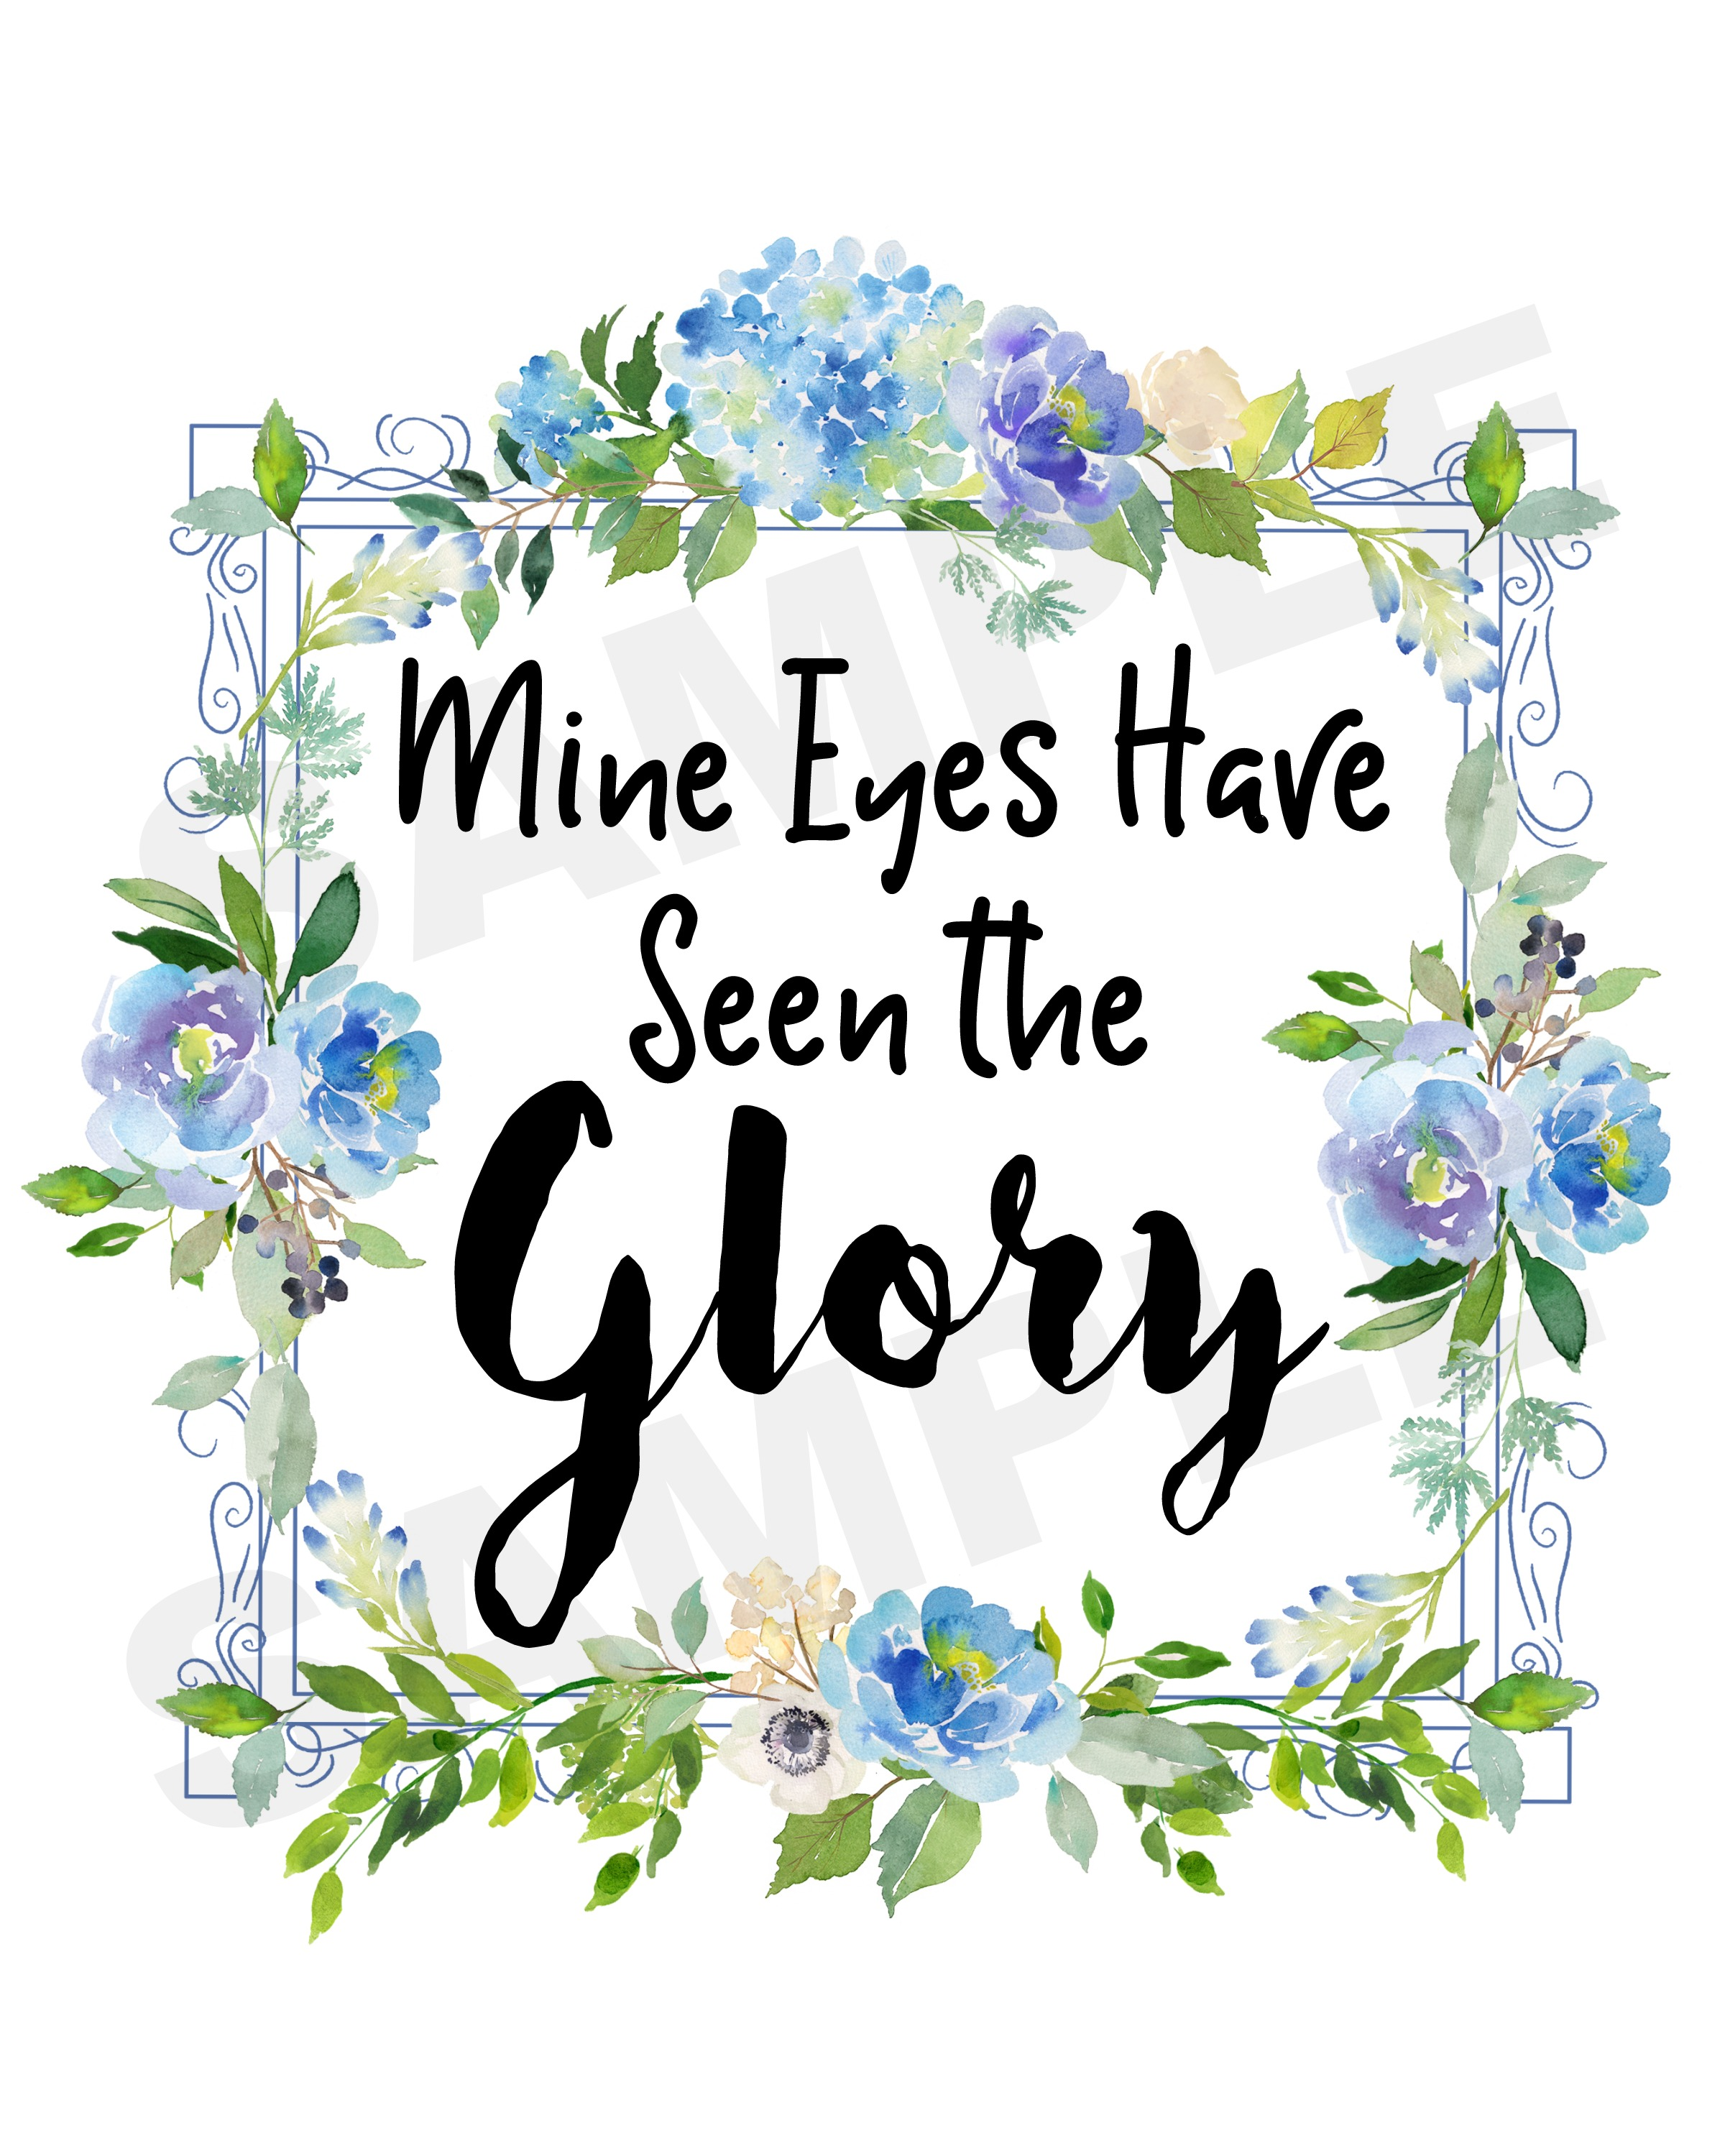 Mine Eyes Have Seen the Glory Gospel Printable | The Everyday Home | www.everydayhomeblog.com